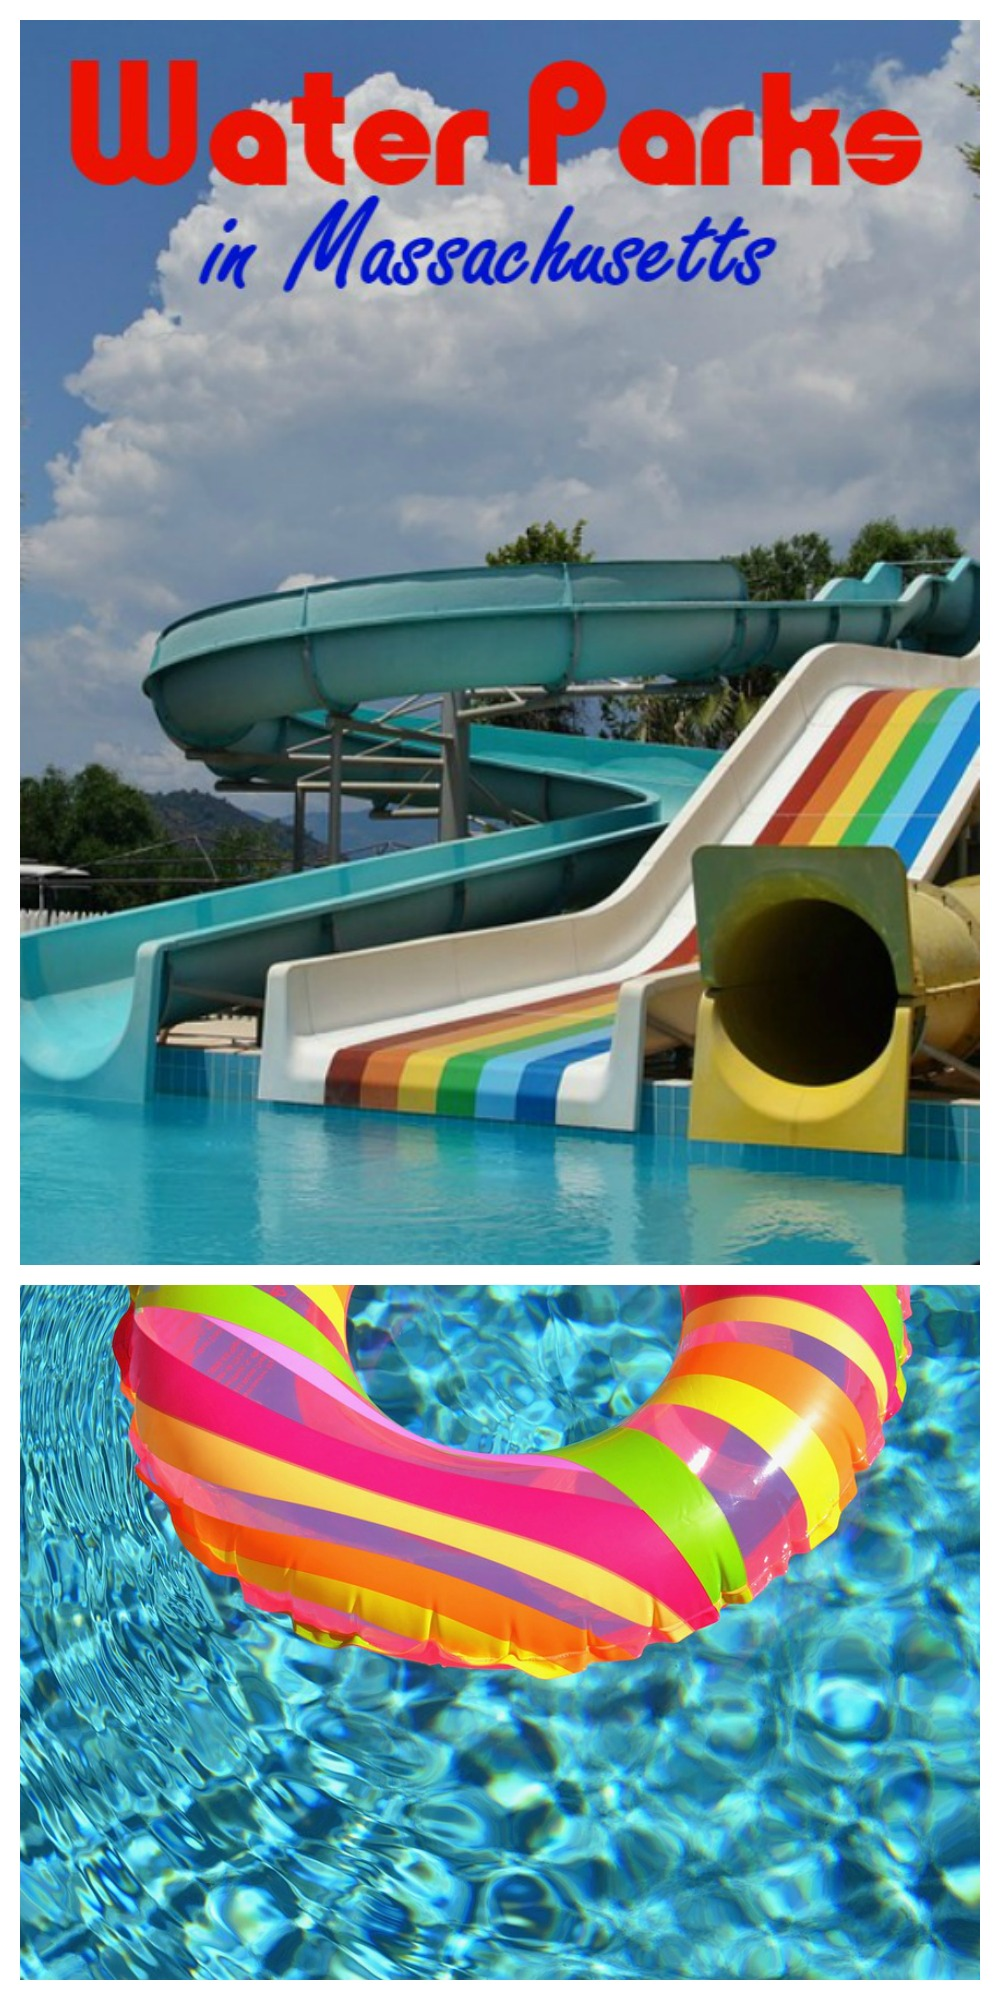 Beat the heat this summer by visiting these Water Parks in Massachusetts!